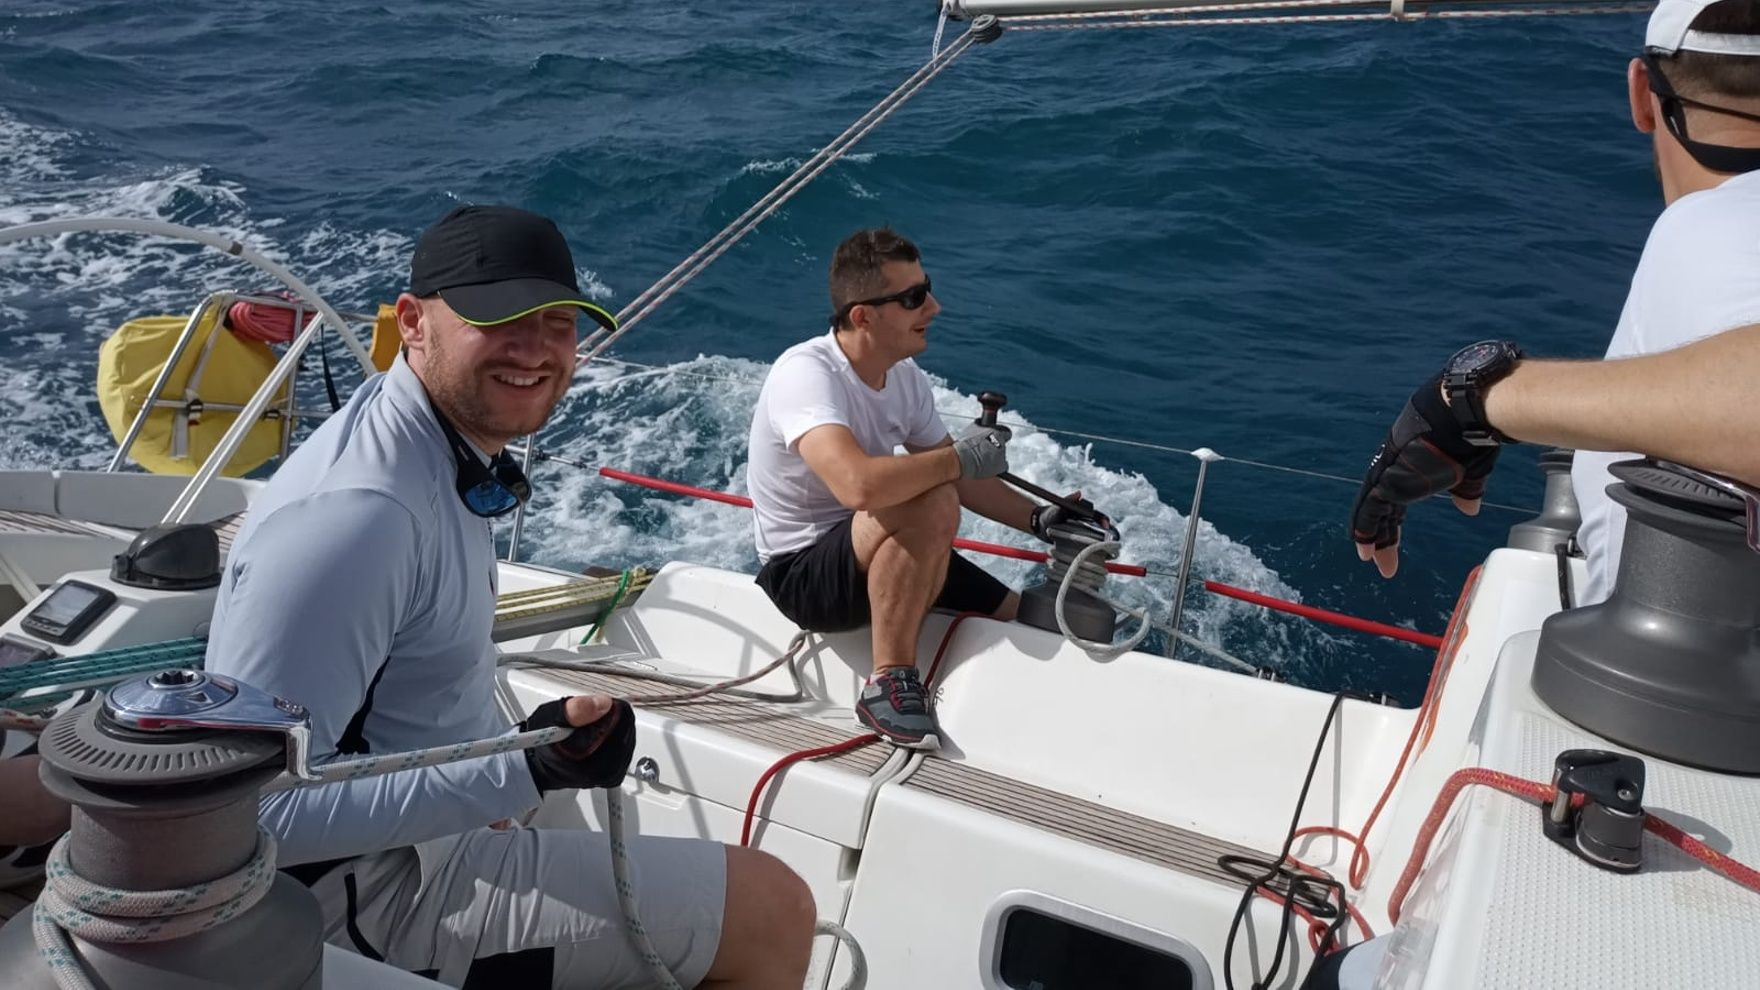 Yacht charter with a skipper